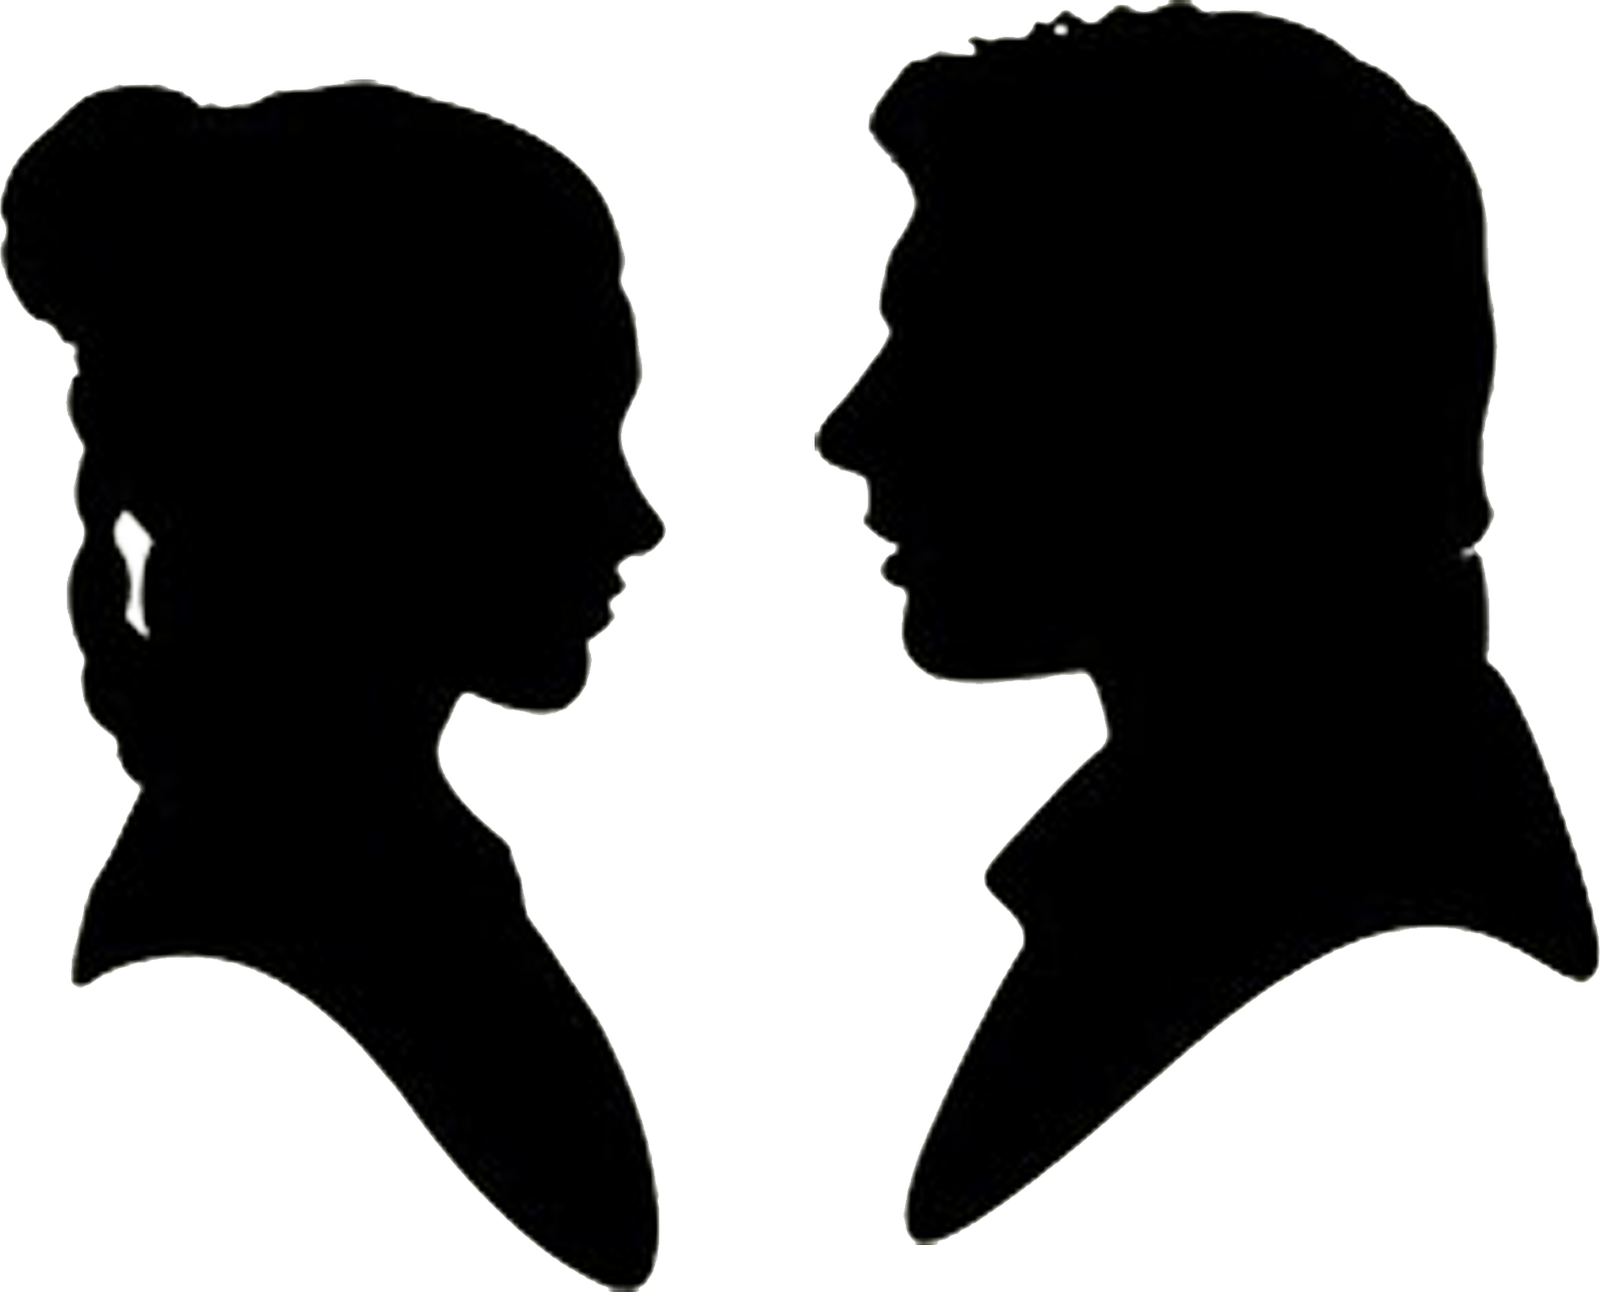 Star wars silhouettes clipart free picture royalty free Star Wars Han Solo and Princess Leia Silhouettes! | Doodlecraft ... picture royalty free